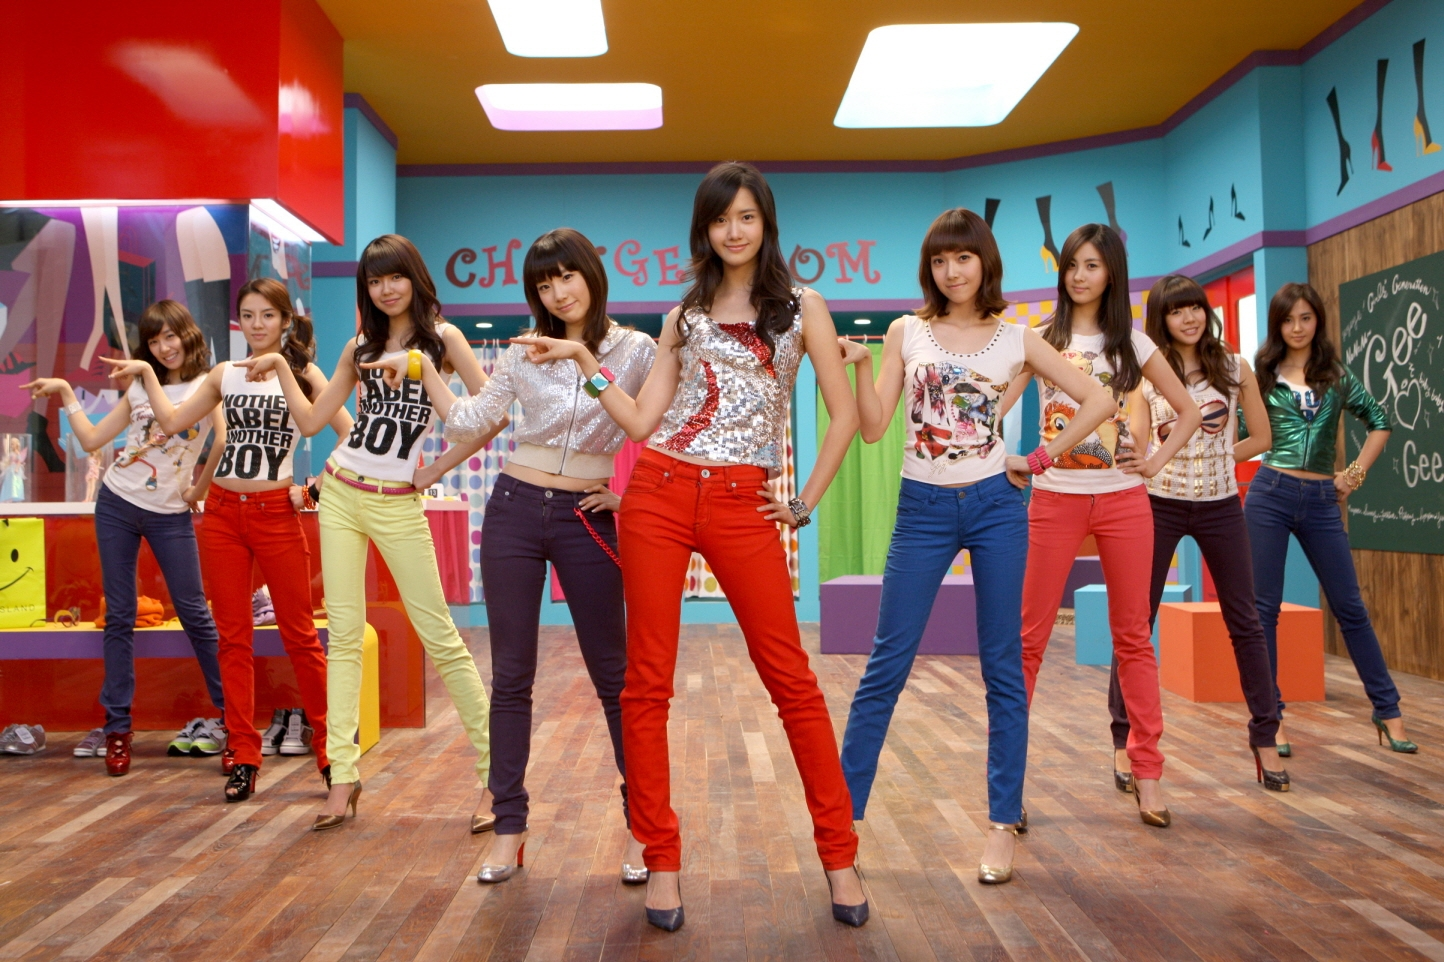 Dads Hookup Their Girls Generation Gee Gee